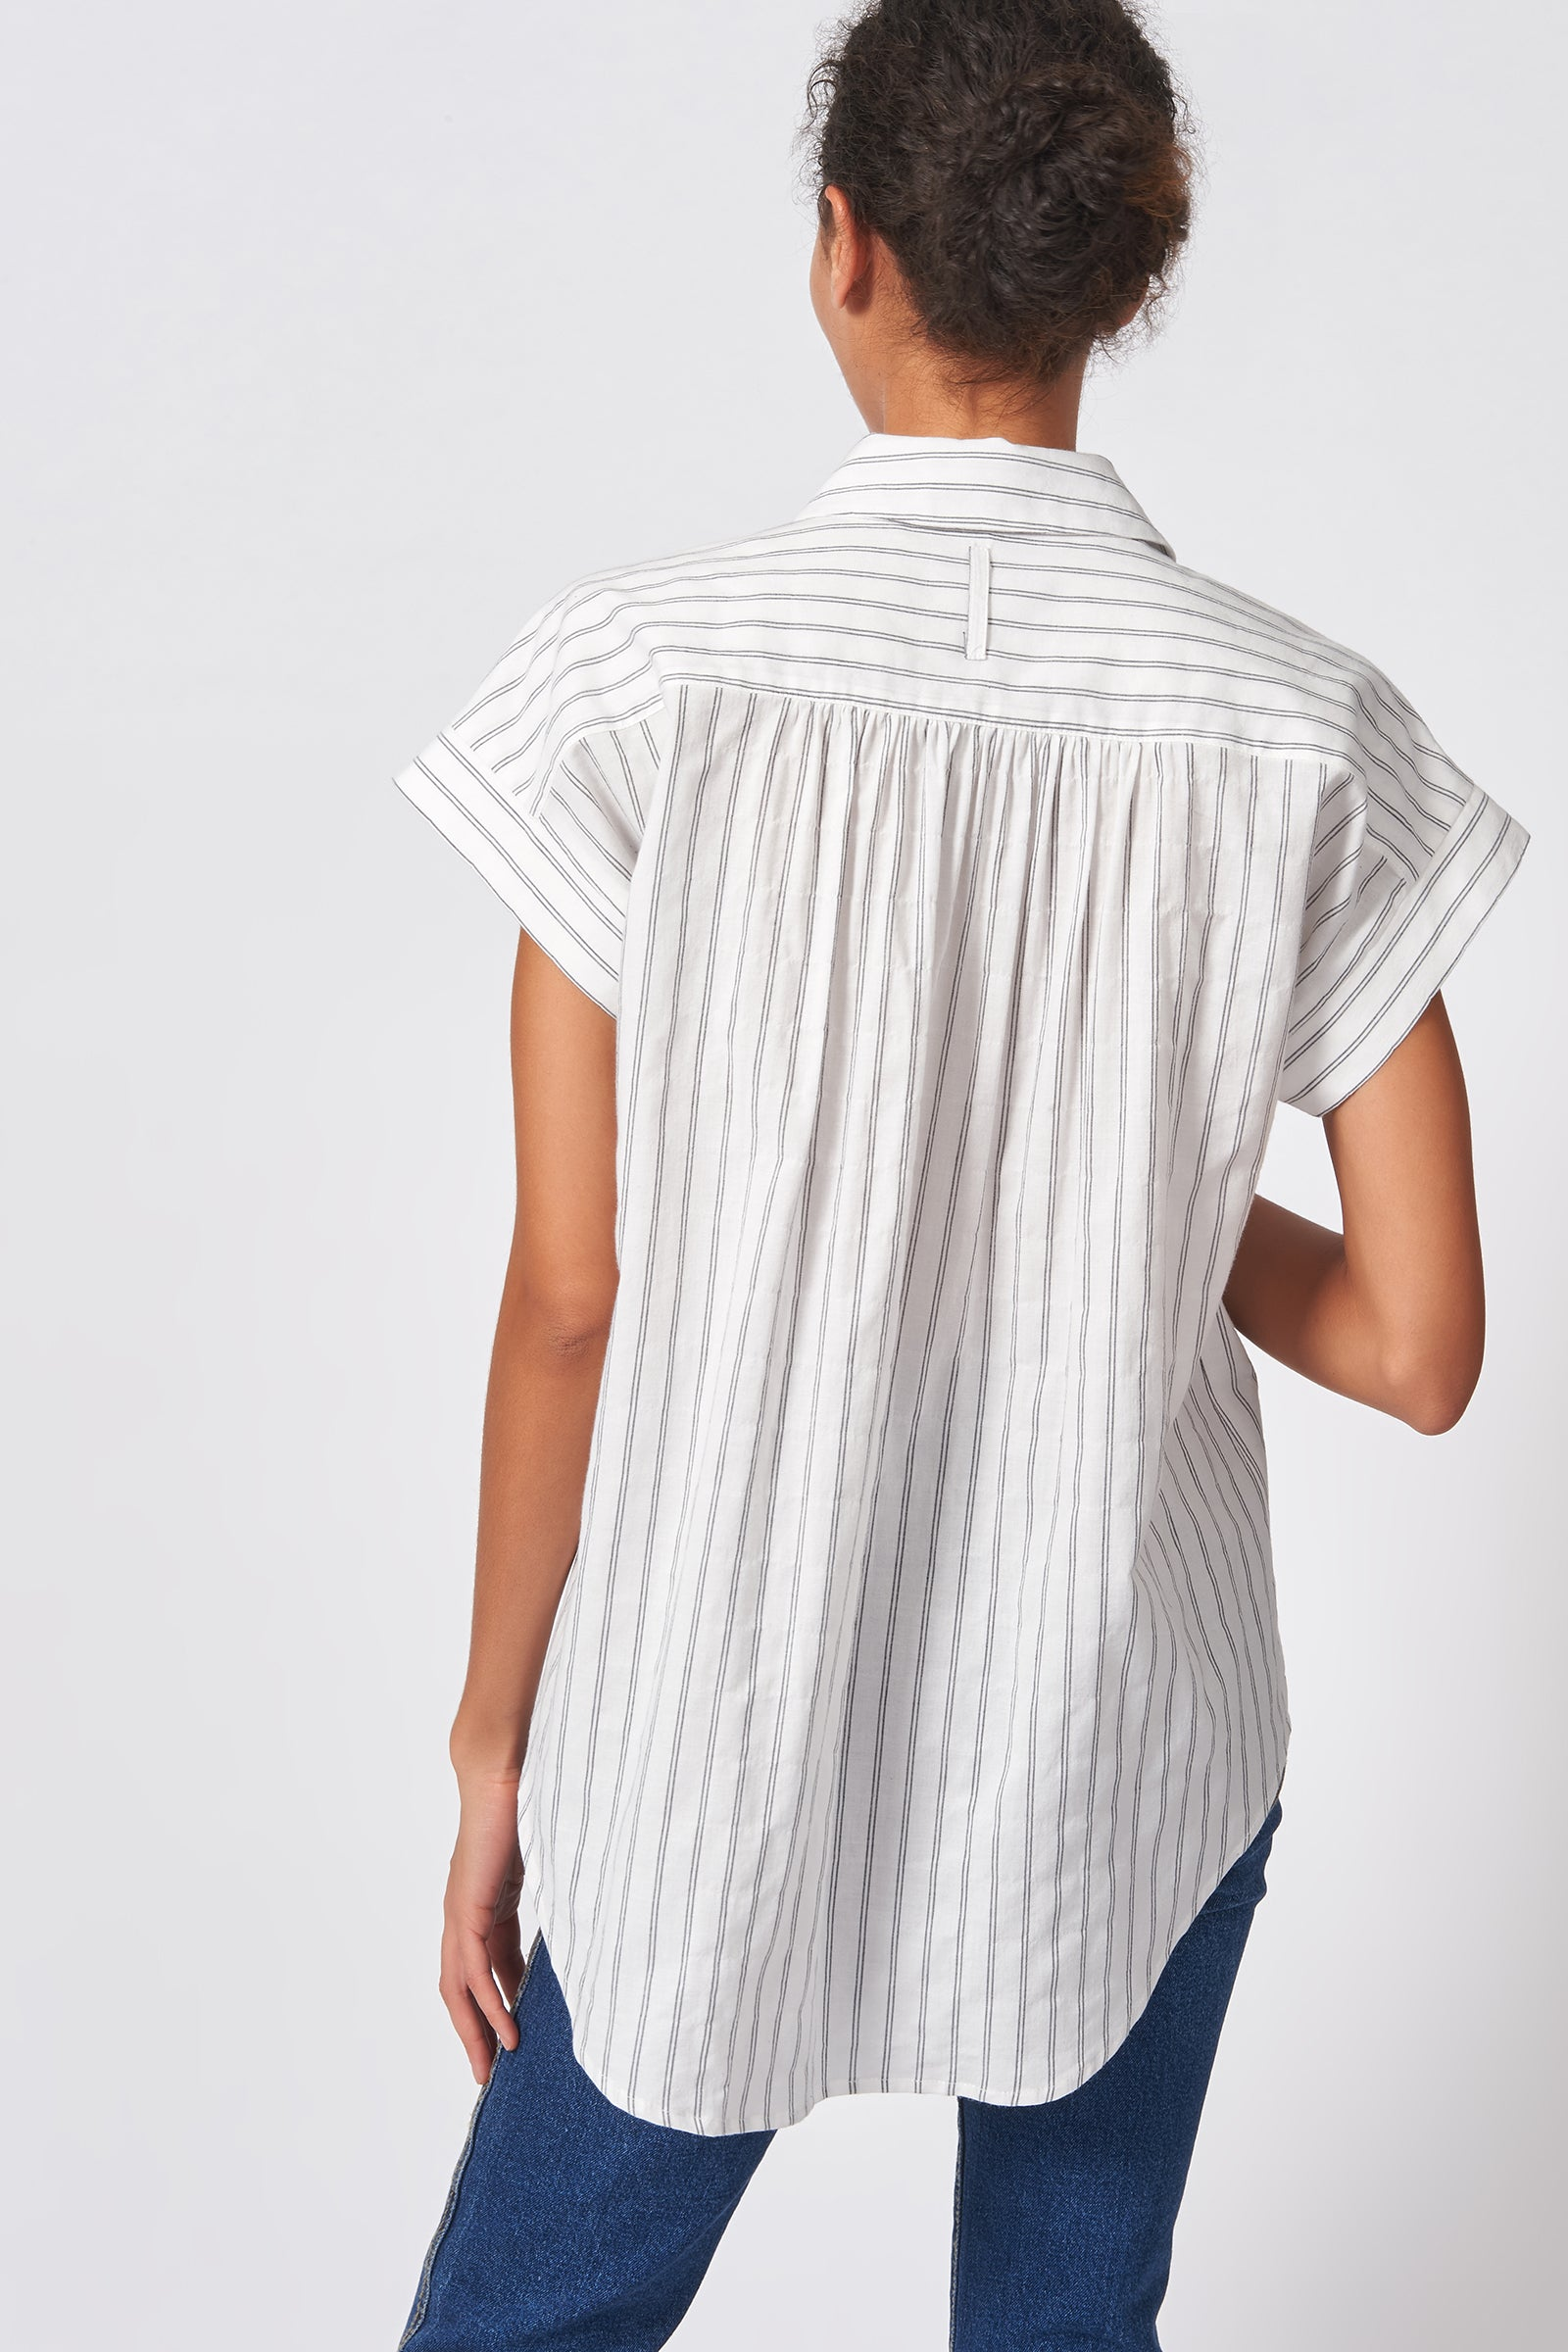 Kal Rieman Shirred Back Collared Top in Black Stripe on Model Back View